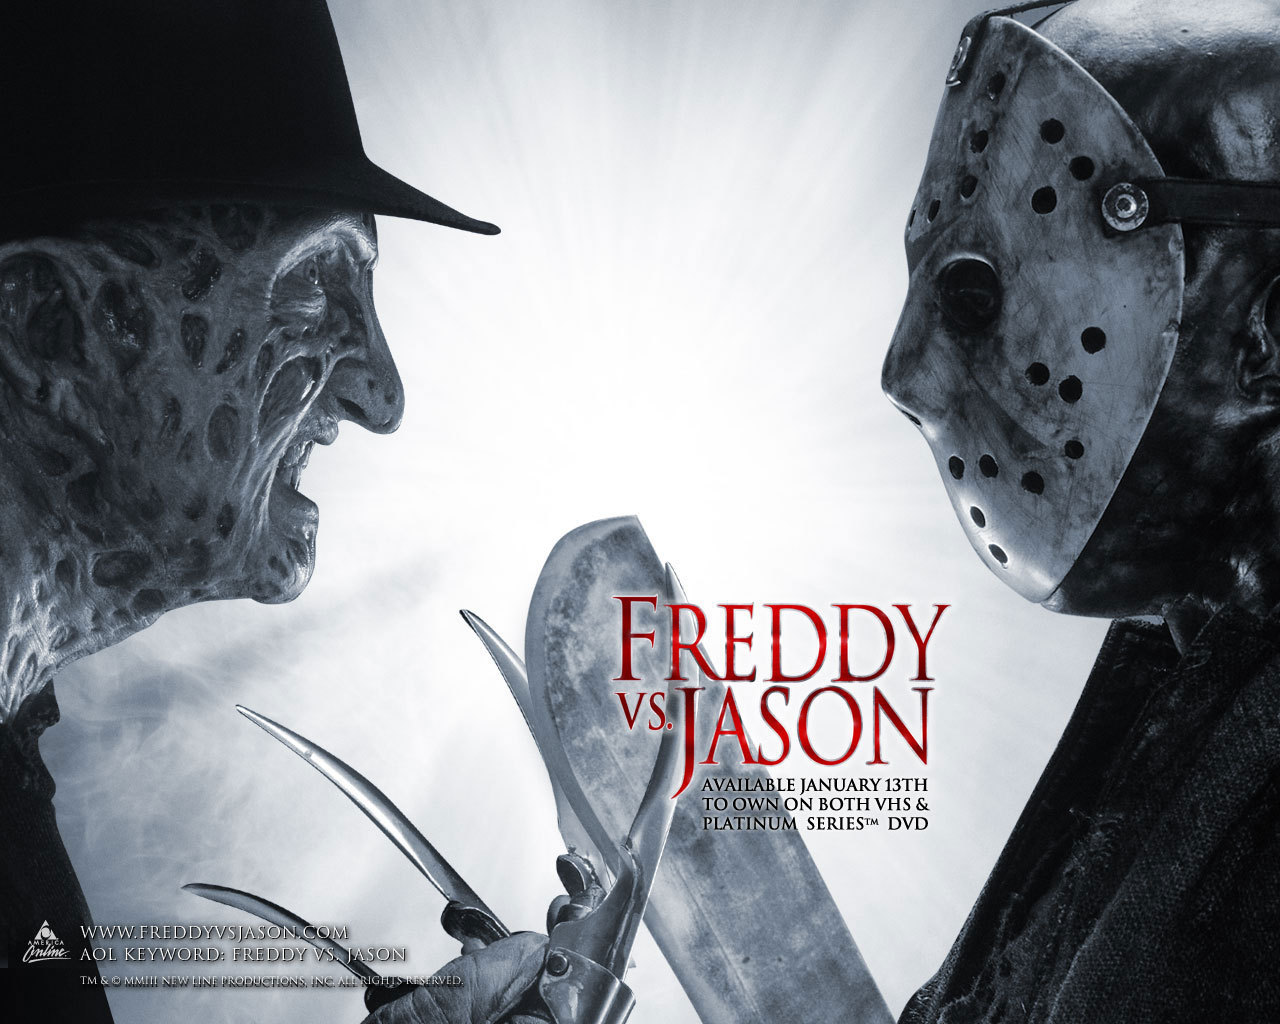 Freddy krueger freddy vs jason